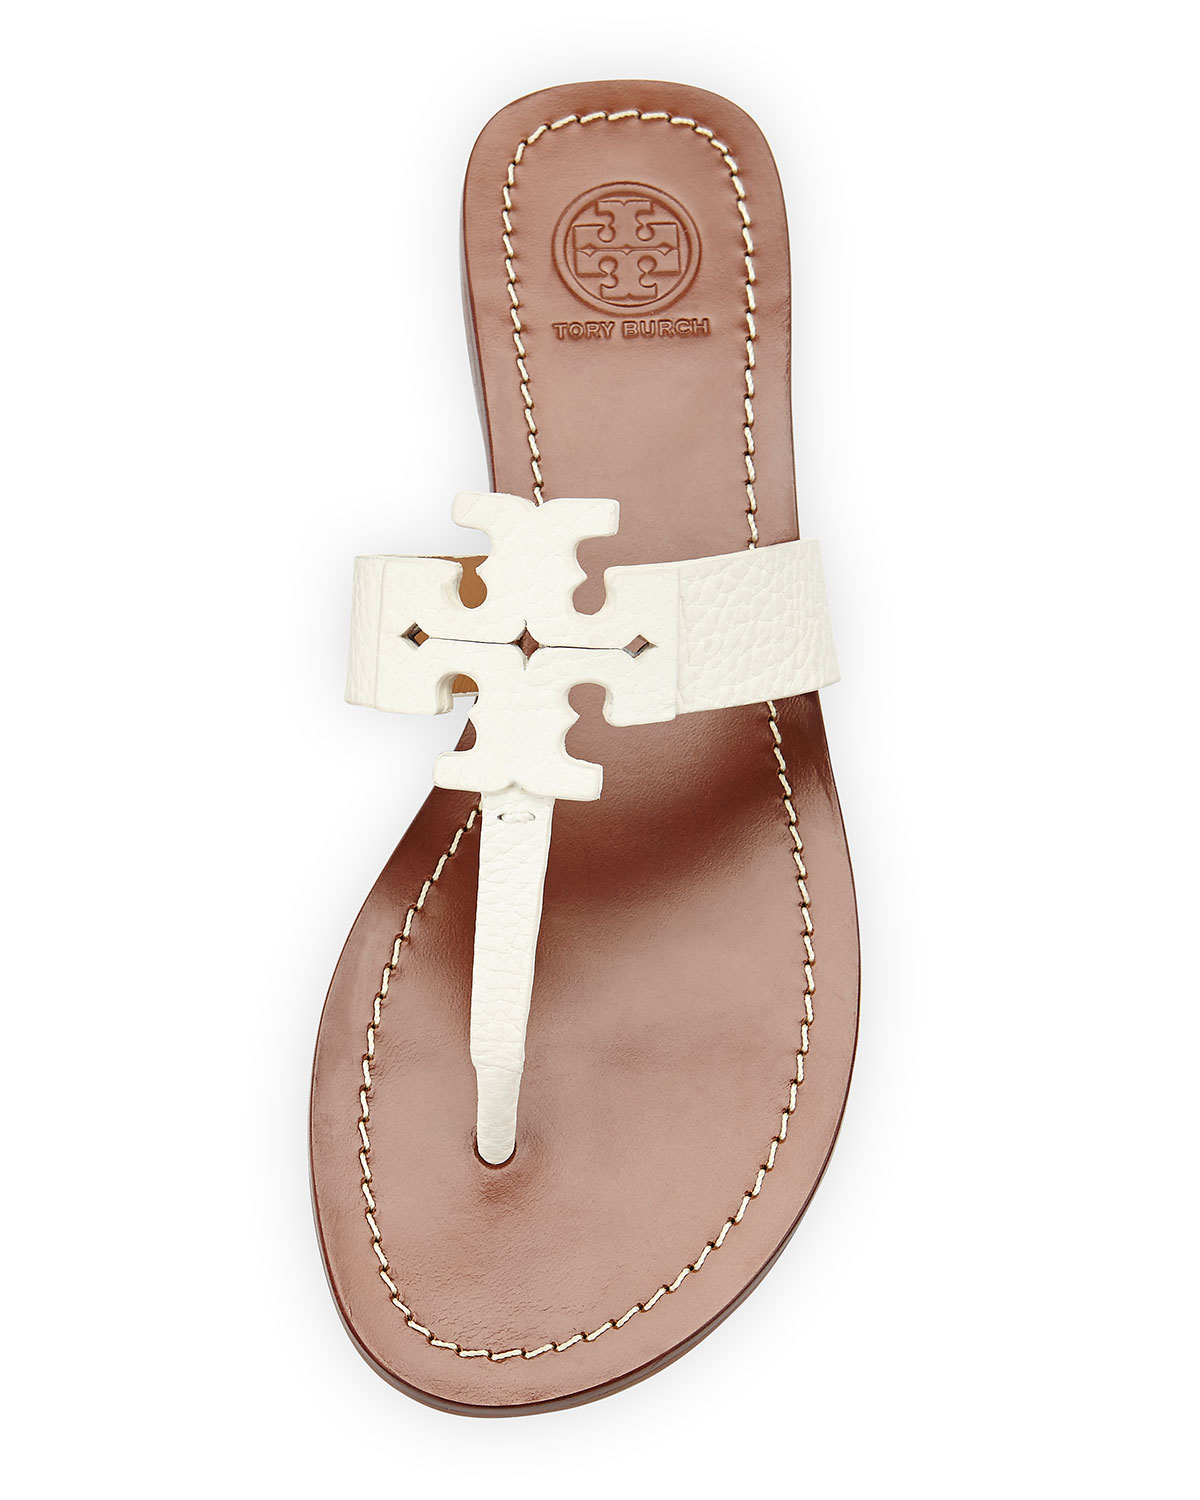 35cf922d6 Lyst - Tory Burch Moore Leather Thong Sandal in White